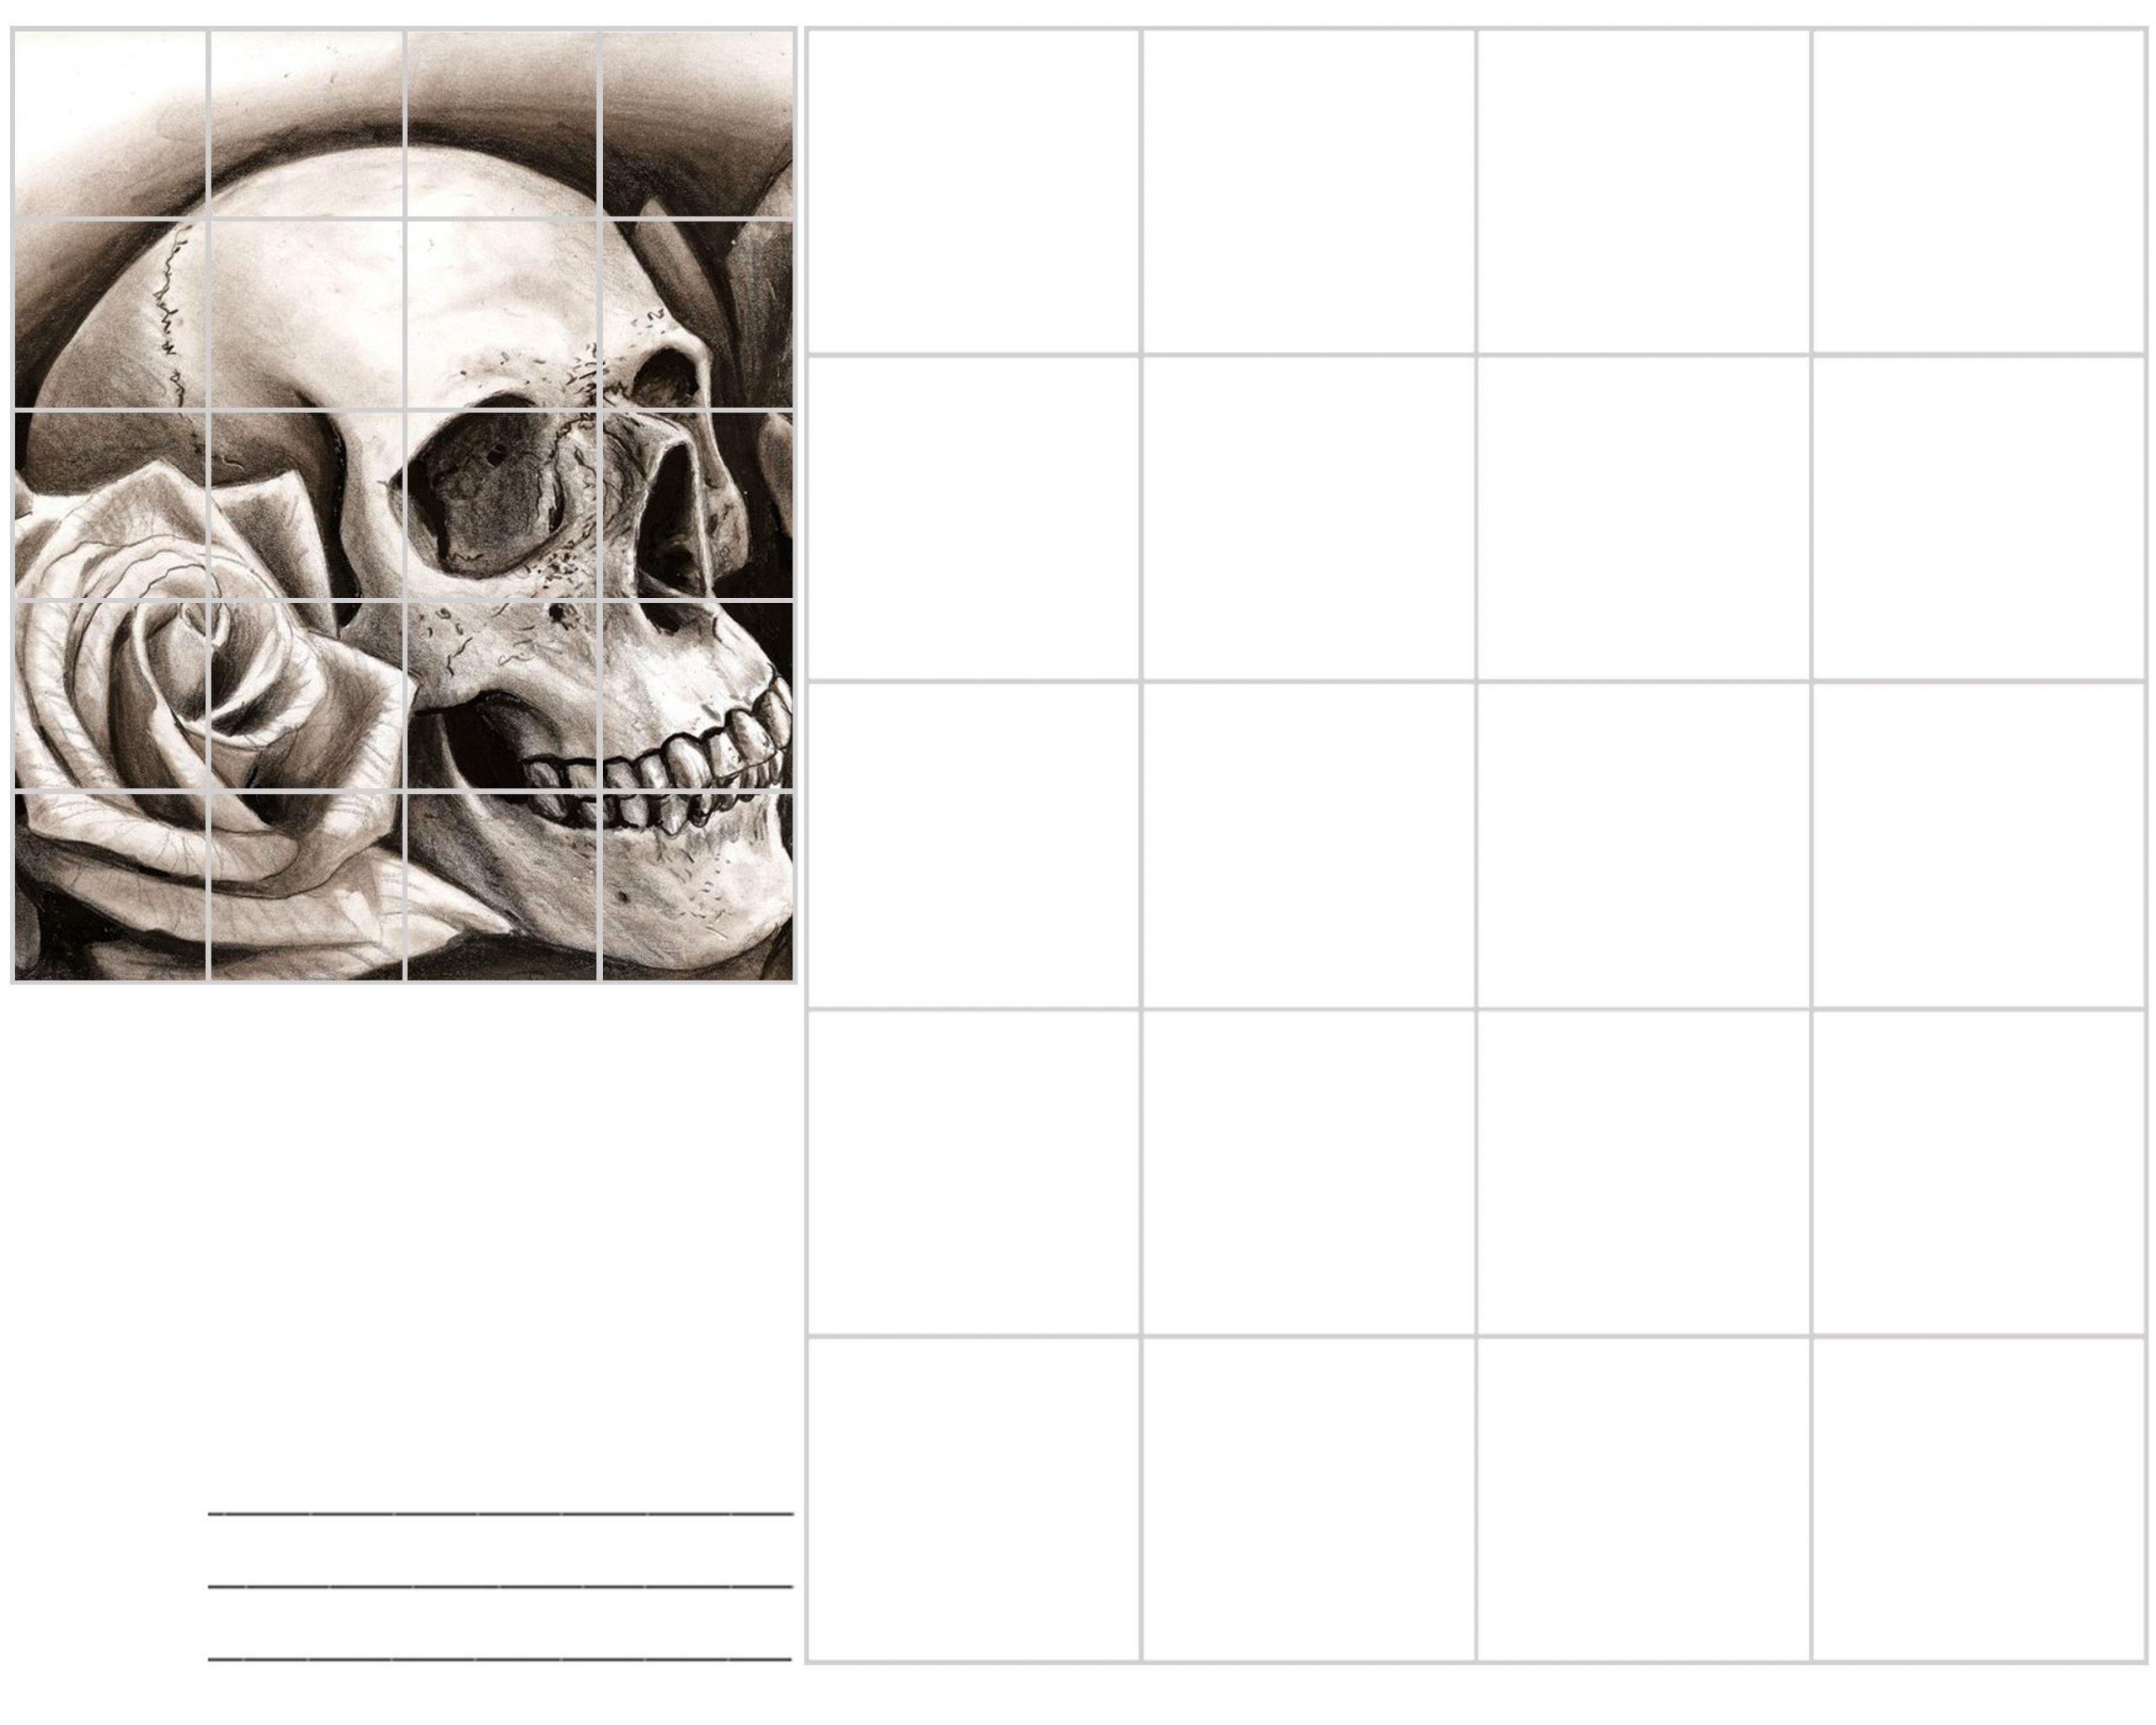 Grid Drawing Worksheets Middle School Image Result for Skull Grid Drawing